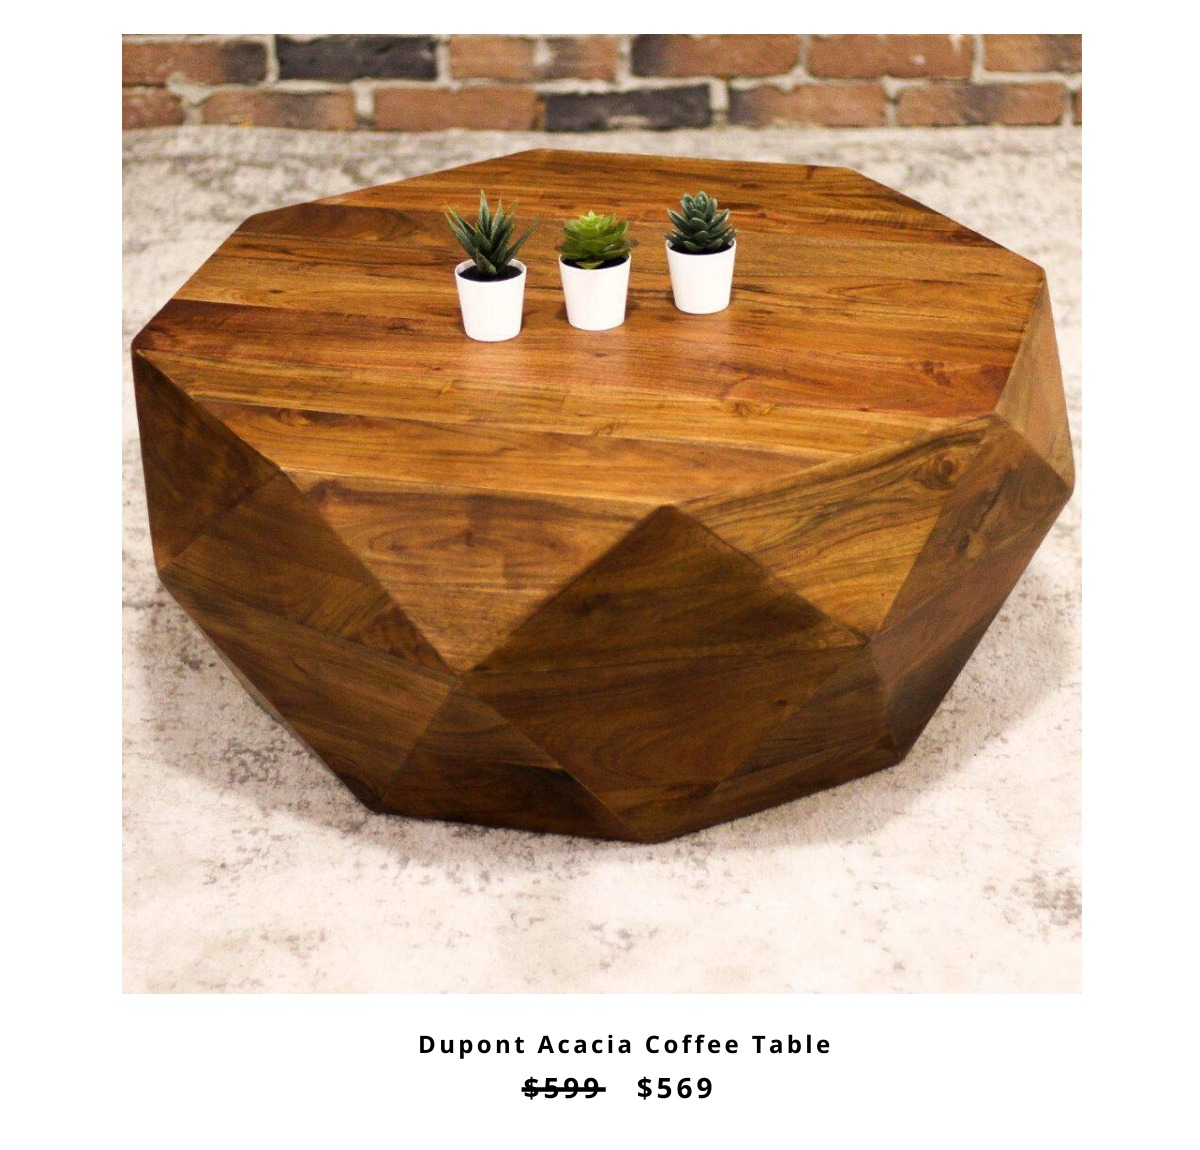 Dupont Acacia Coffee Table